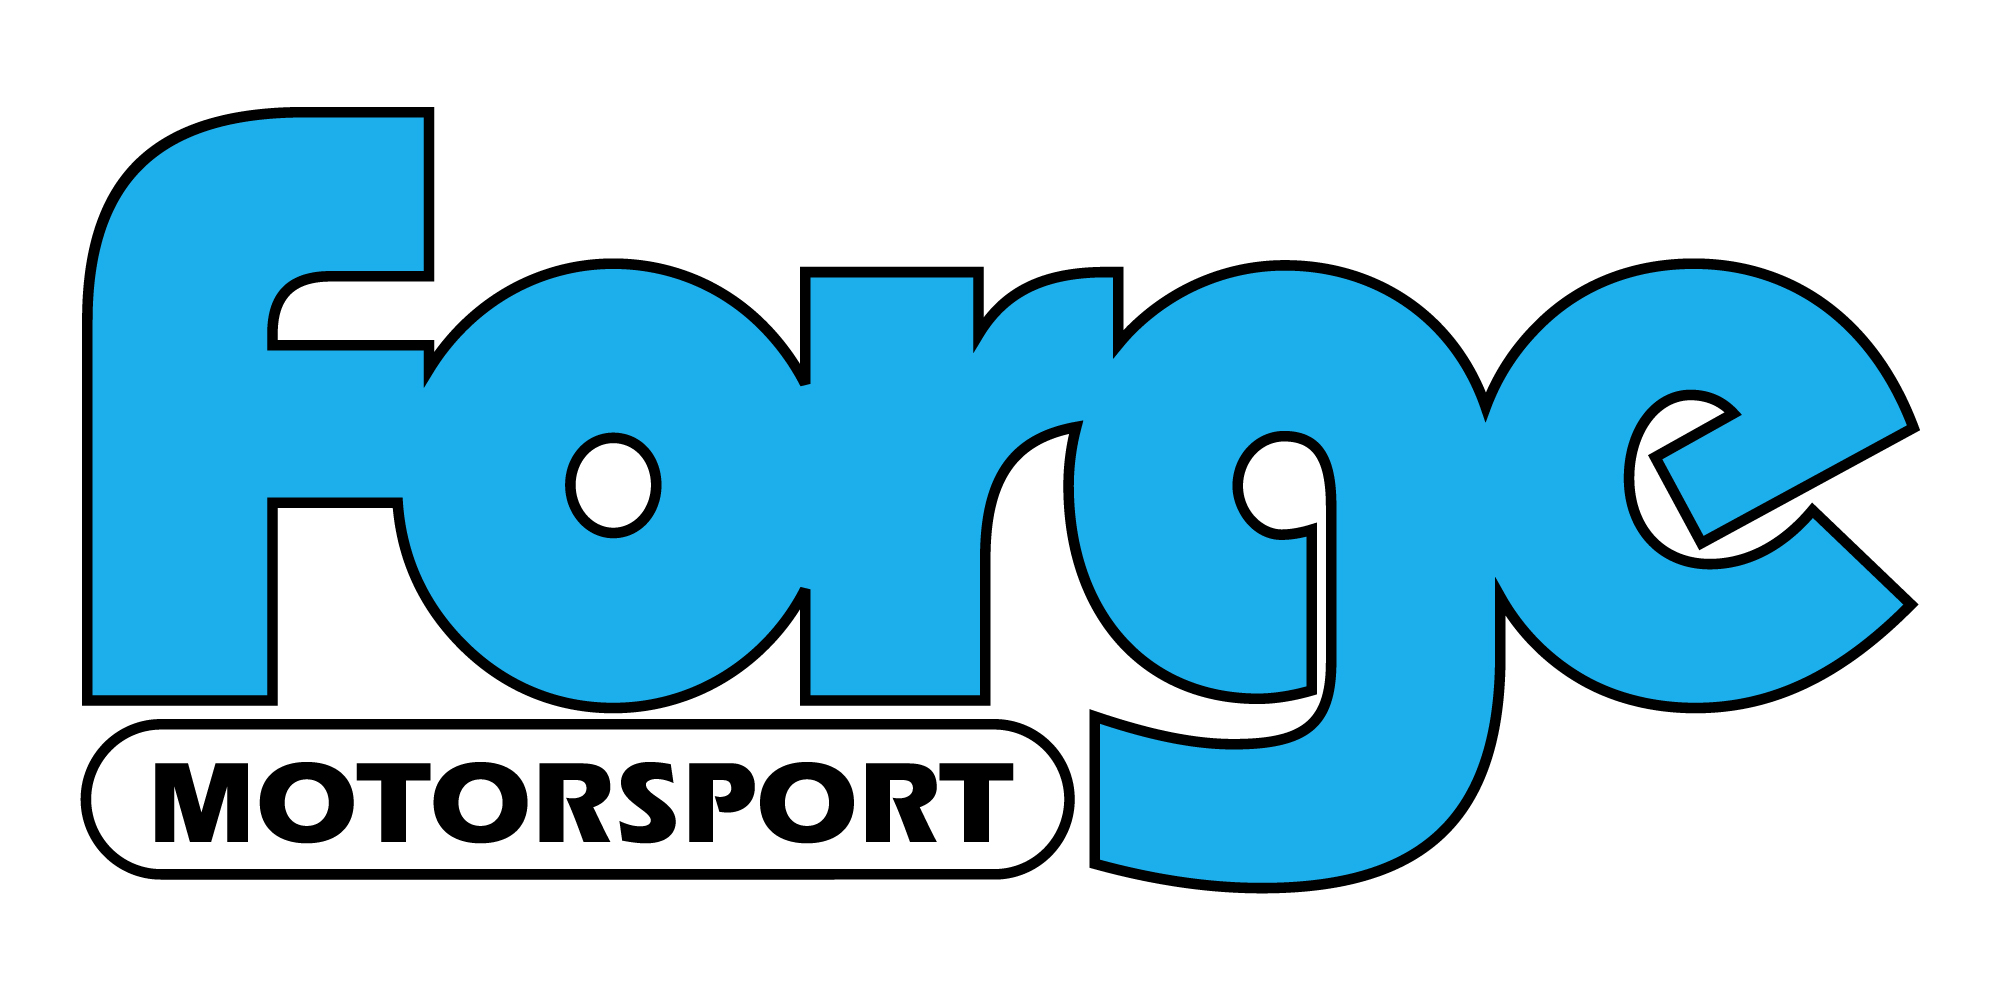 www.forgemotorsport.co.uk